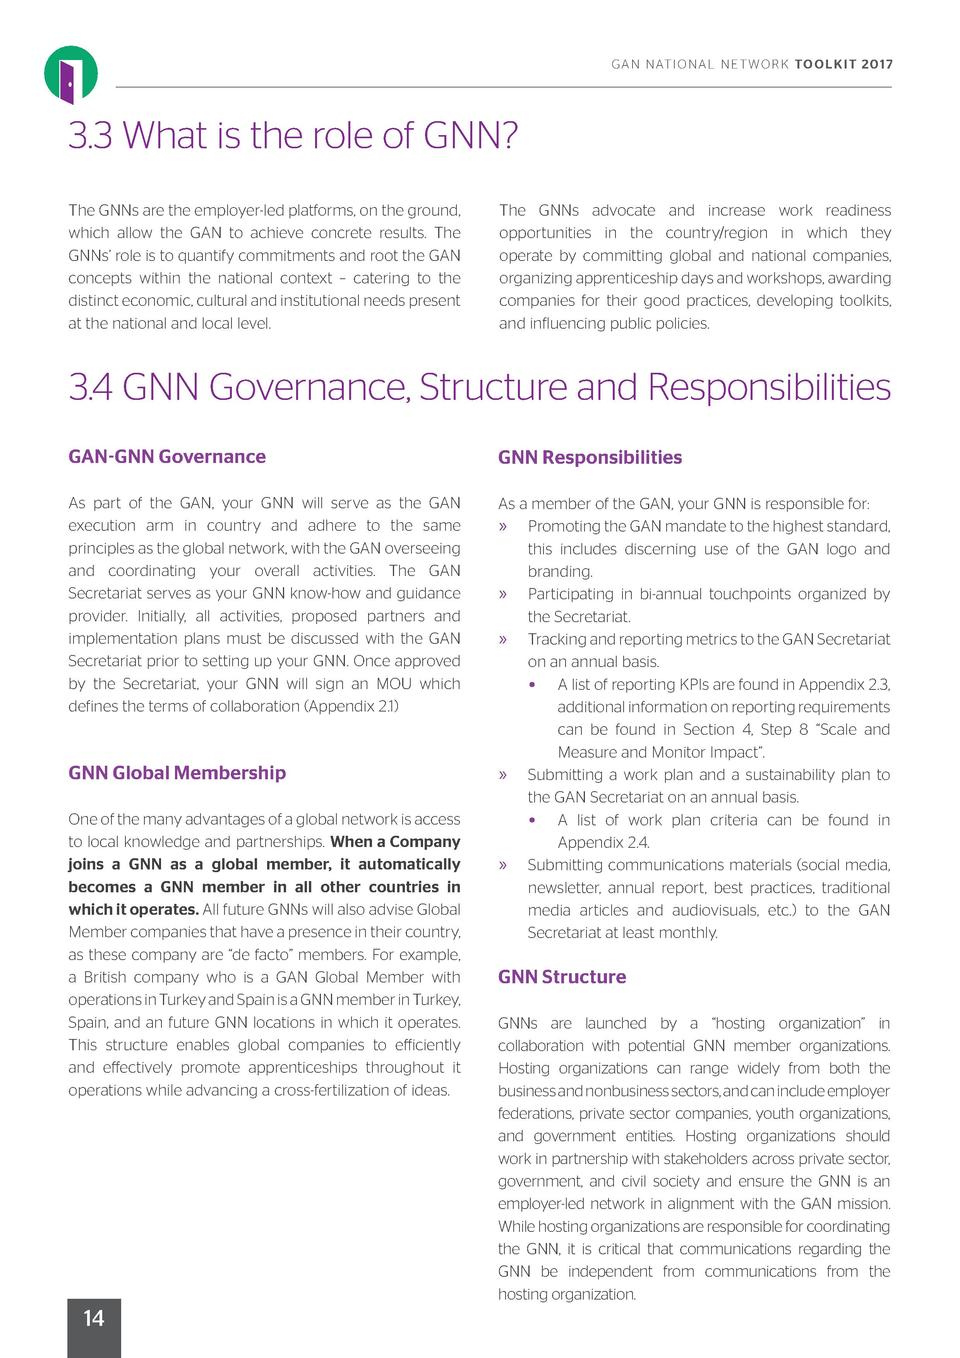 G A N N AT I O N A L N E T W O R K TO O L K I T 2 017  3.3 What is the role of GNN  The GNNs are the employer-led platform...